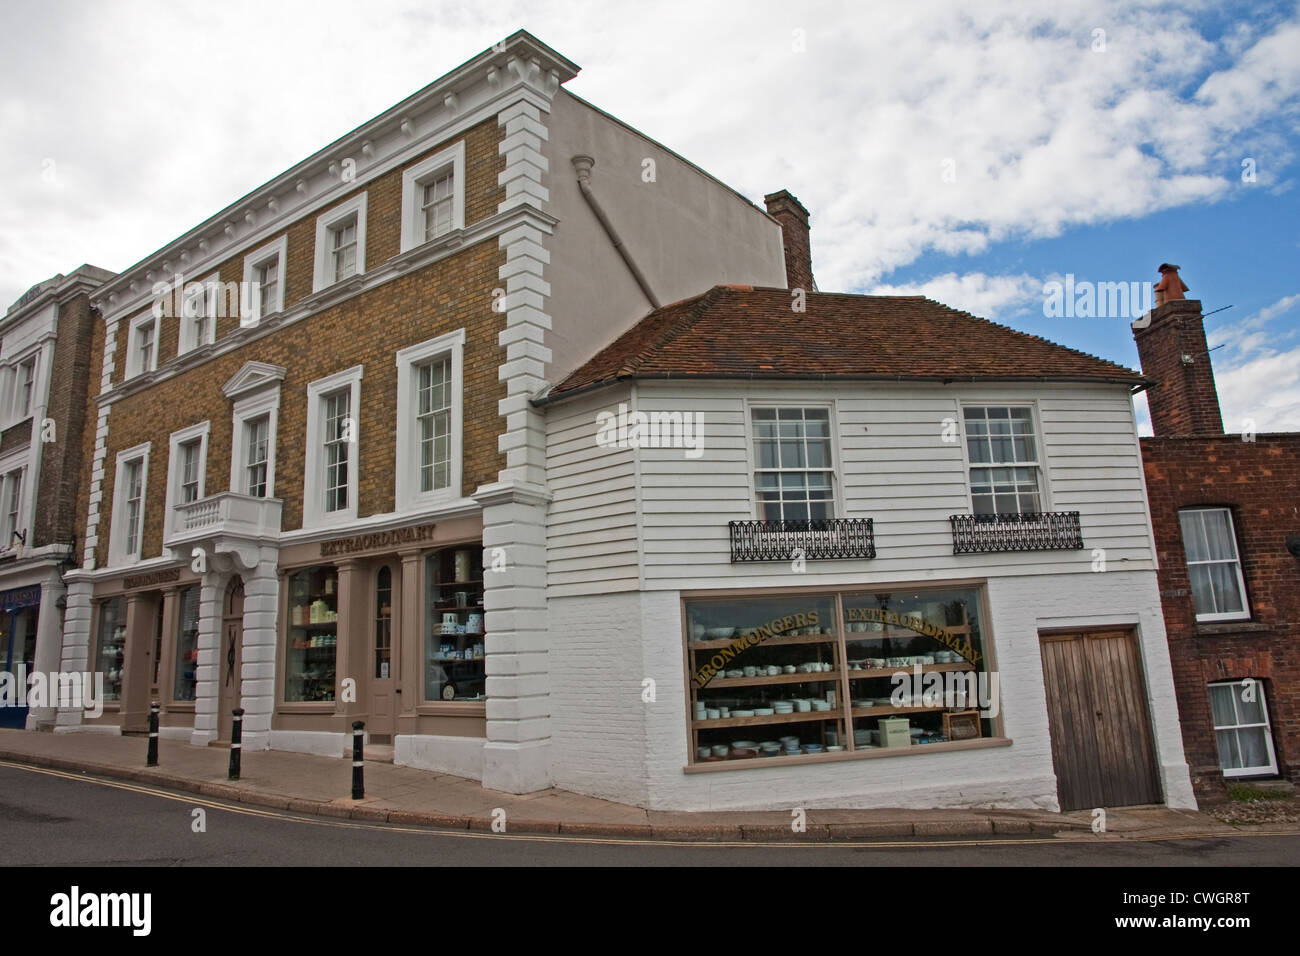 Ironmonger's extraordinary shop, Rye - Stock Image